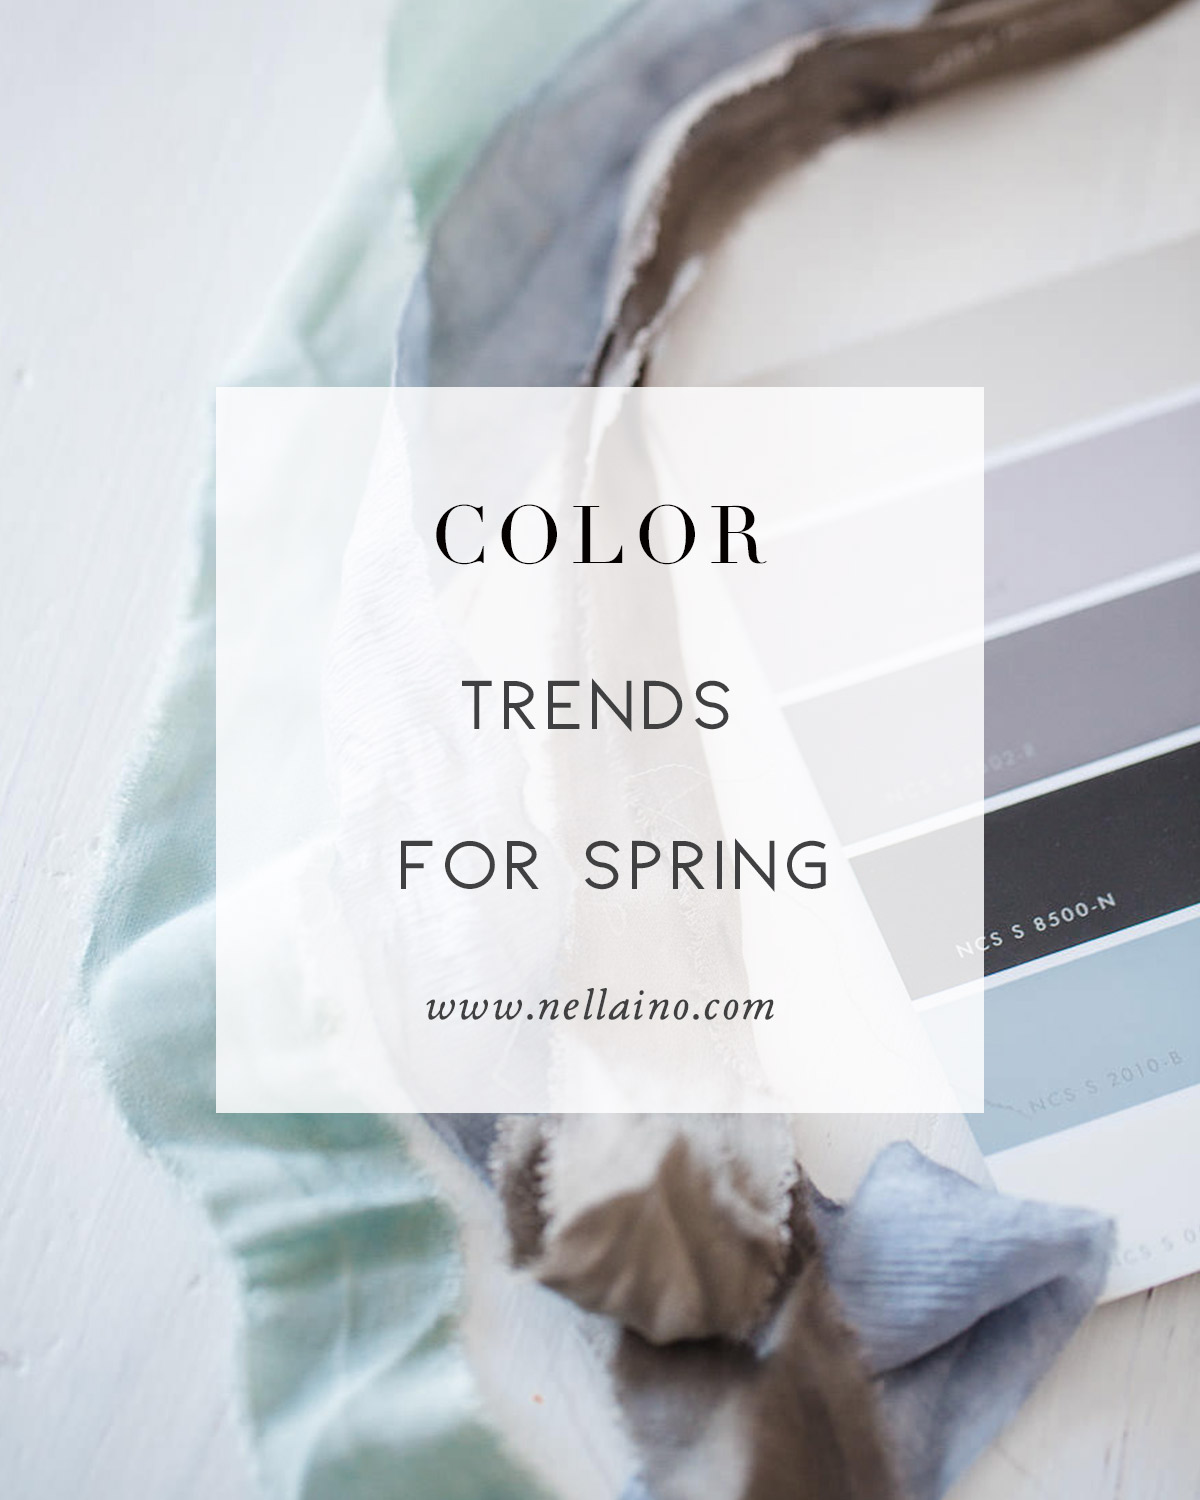 Color-trends-for-spring.jpg